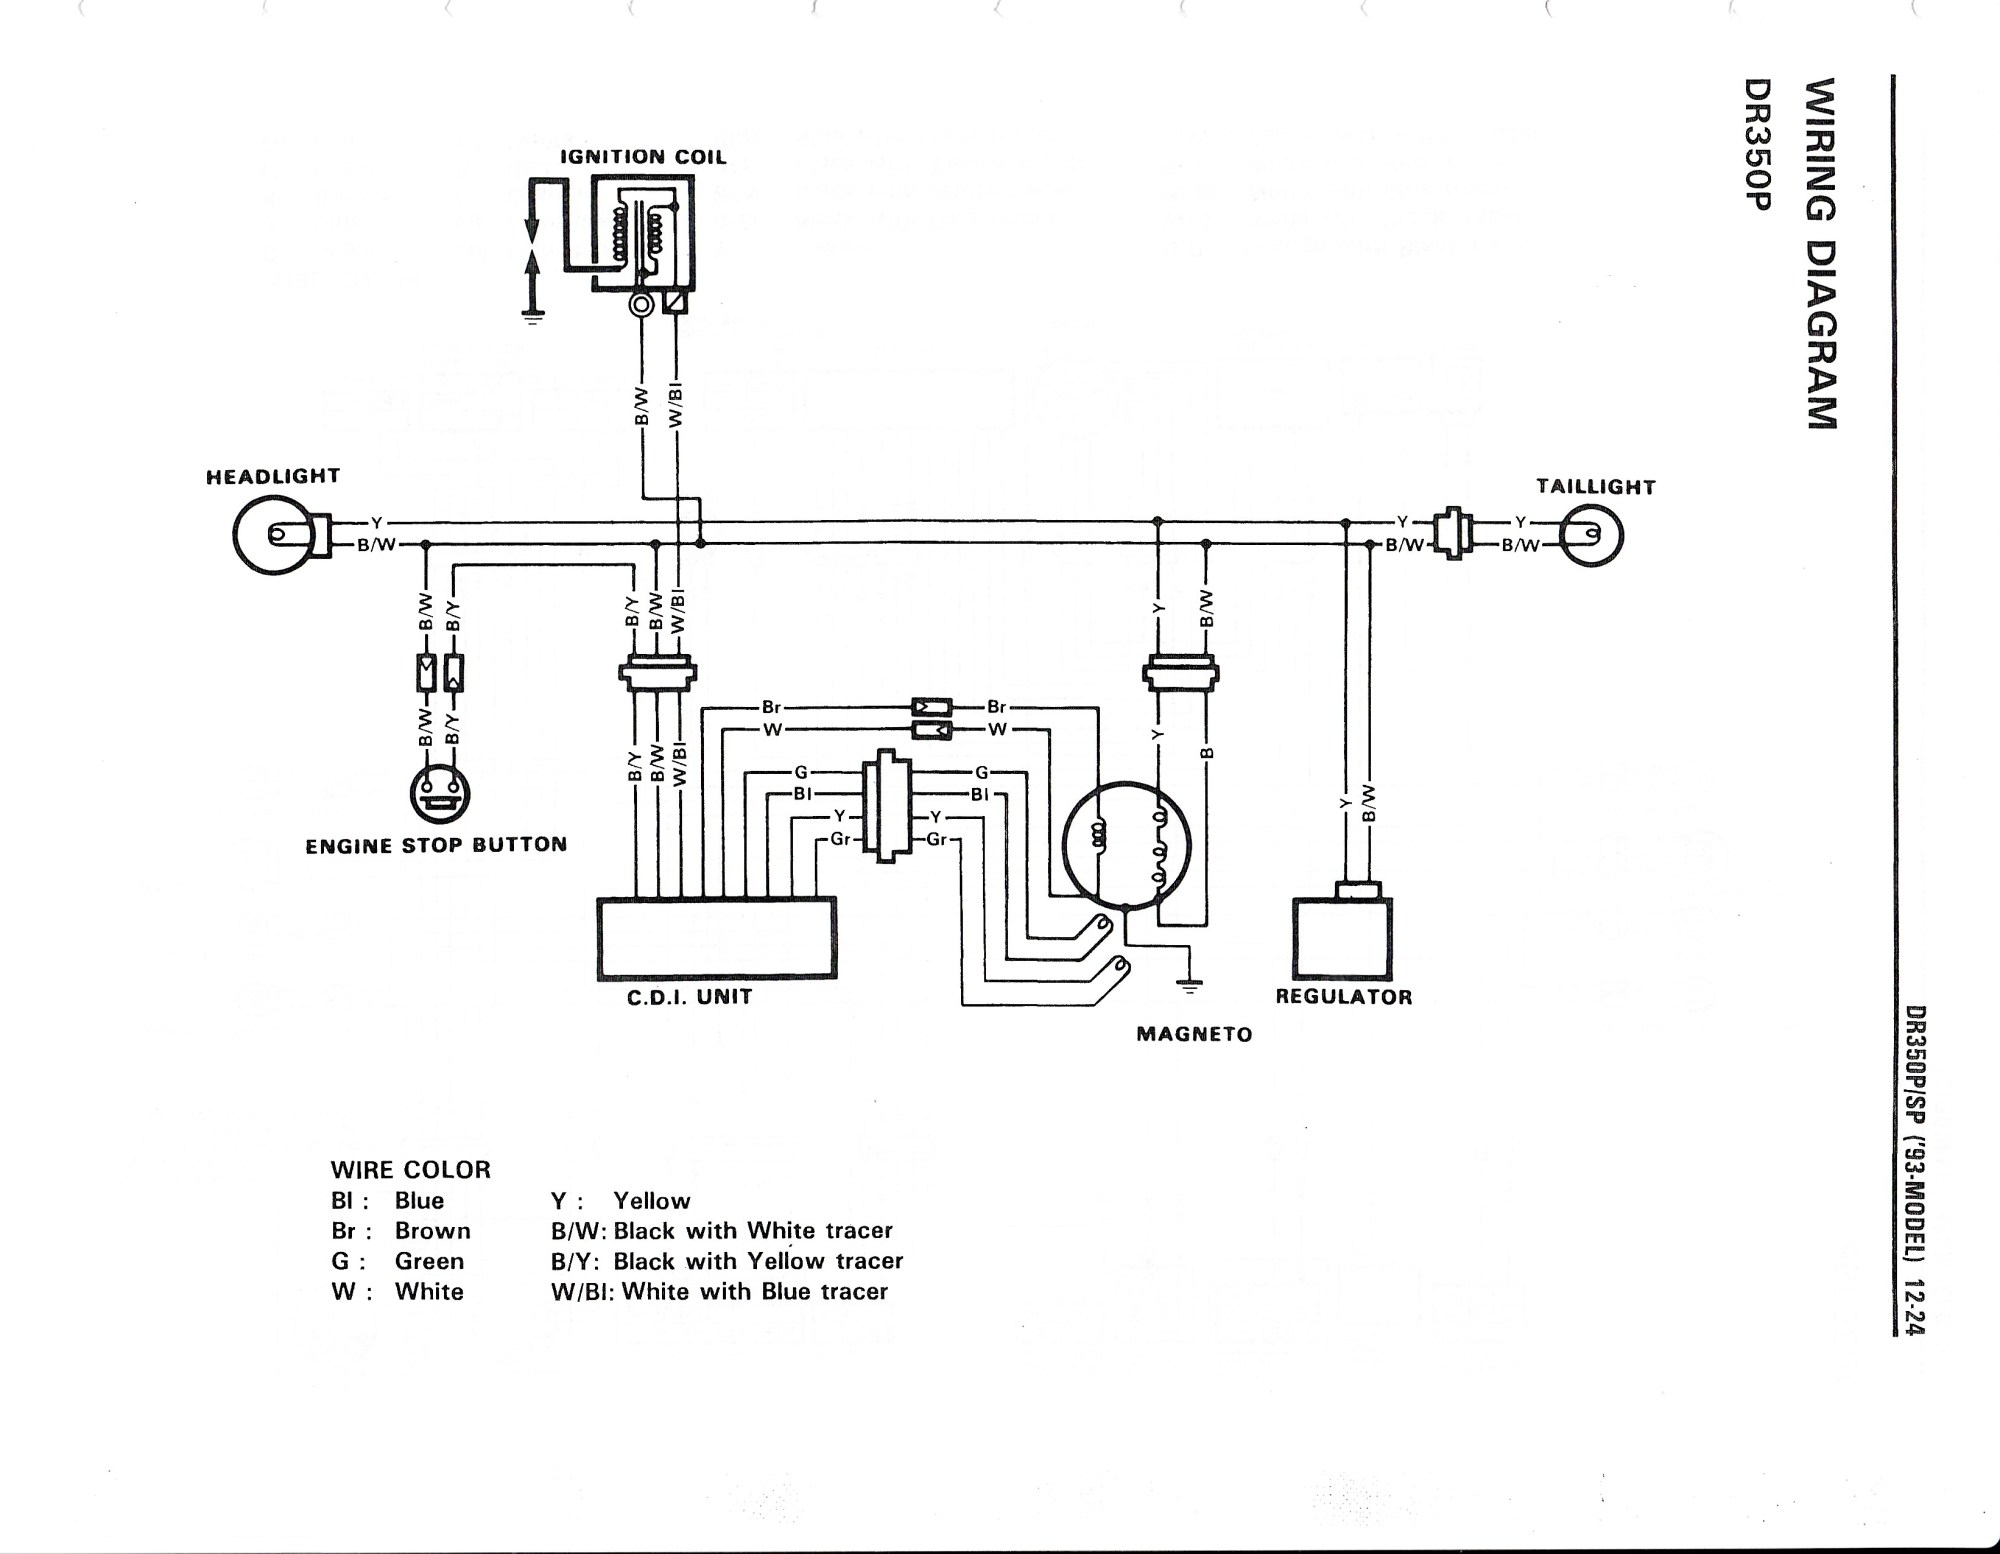 hight resolution of dr250 wiring diagram wiring diagram img suzuki dr 250 wiring diagram dr250 wiring diagram